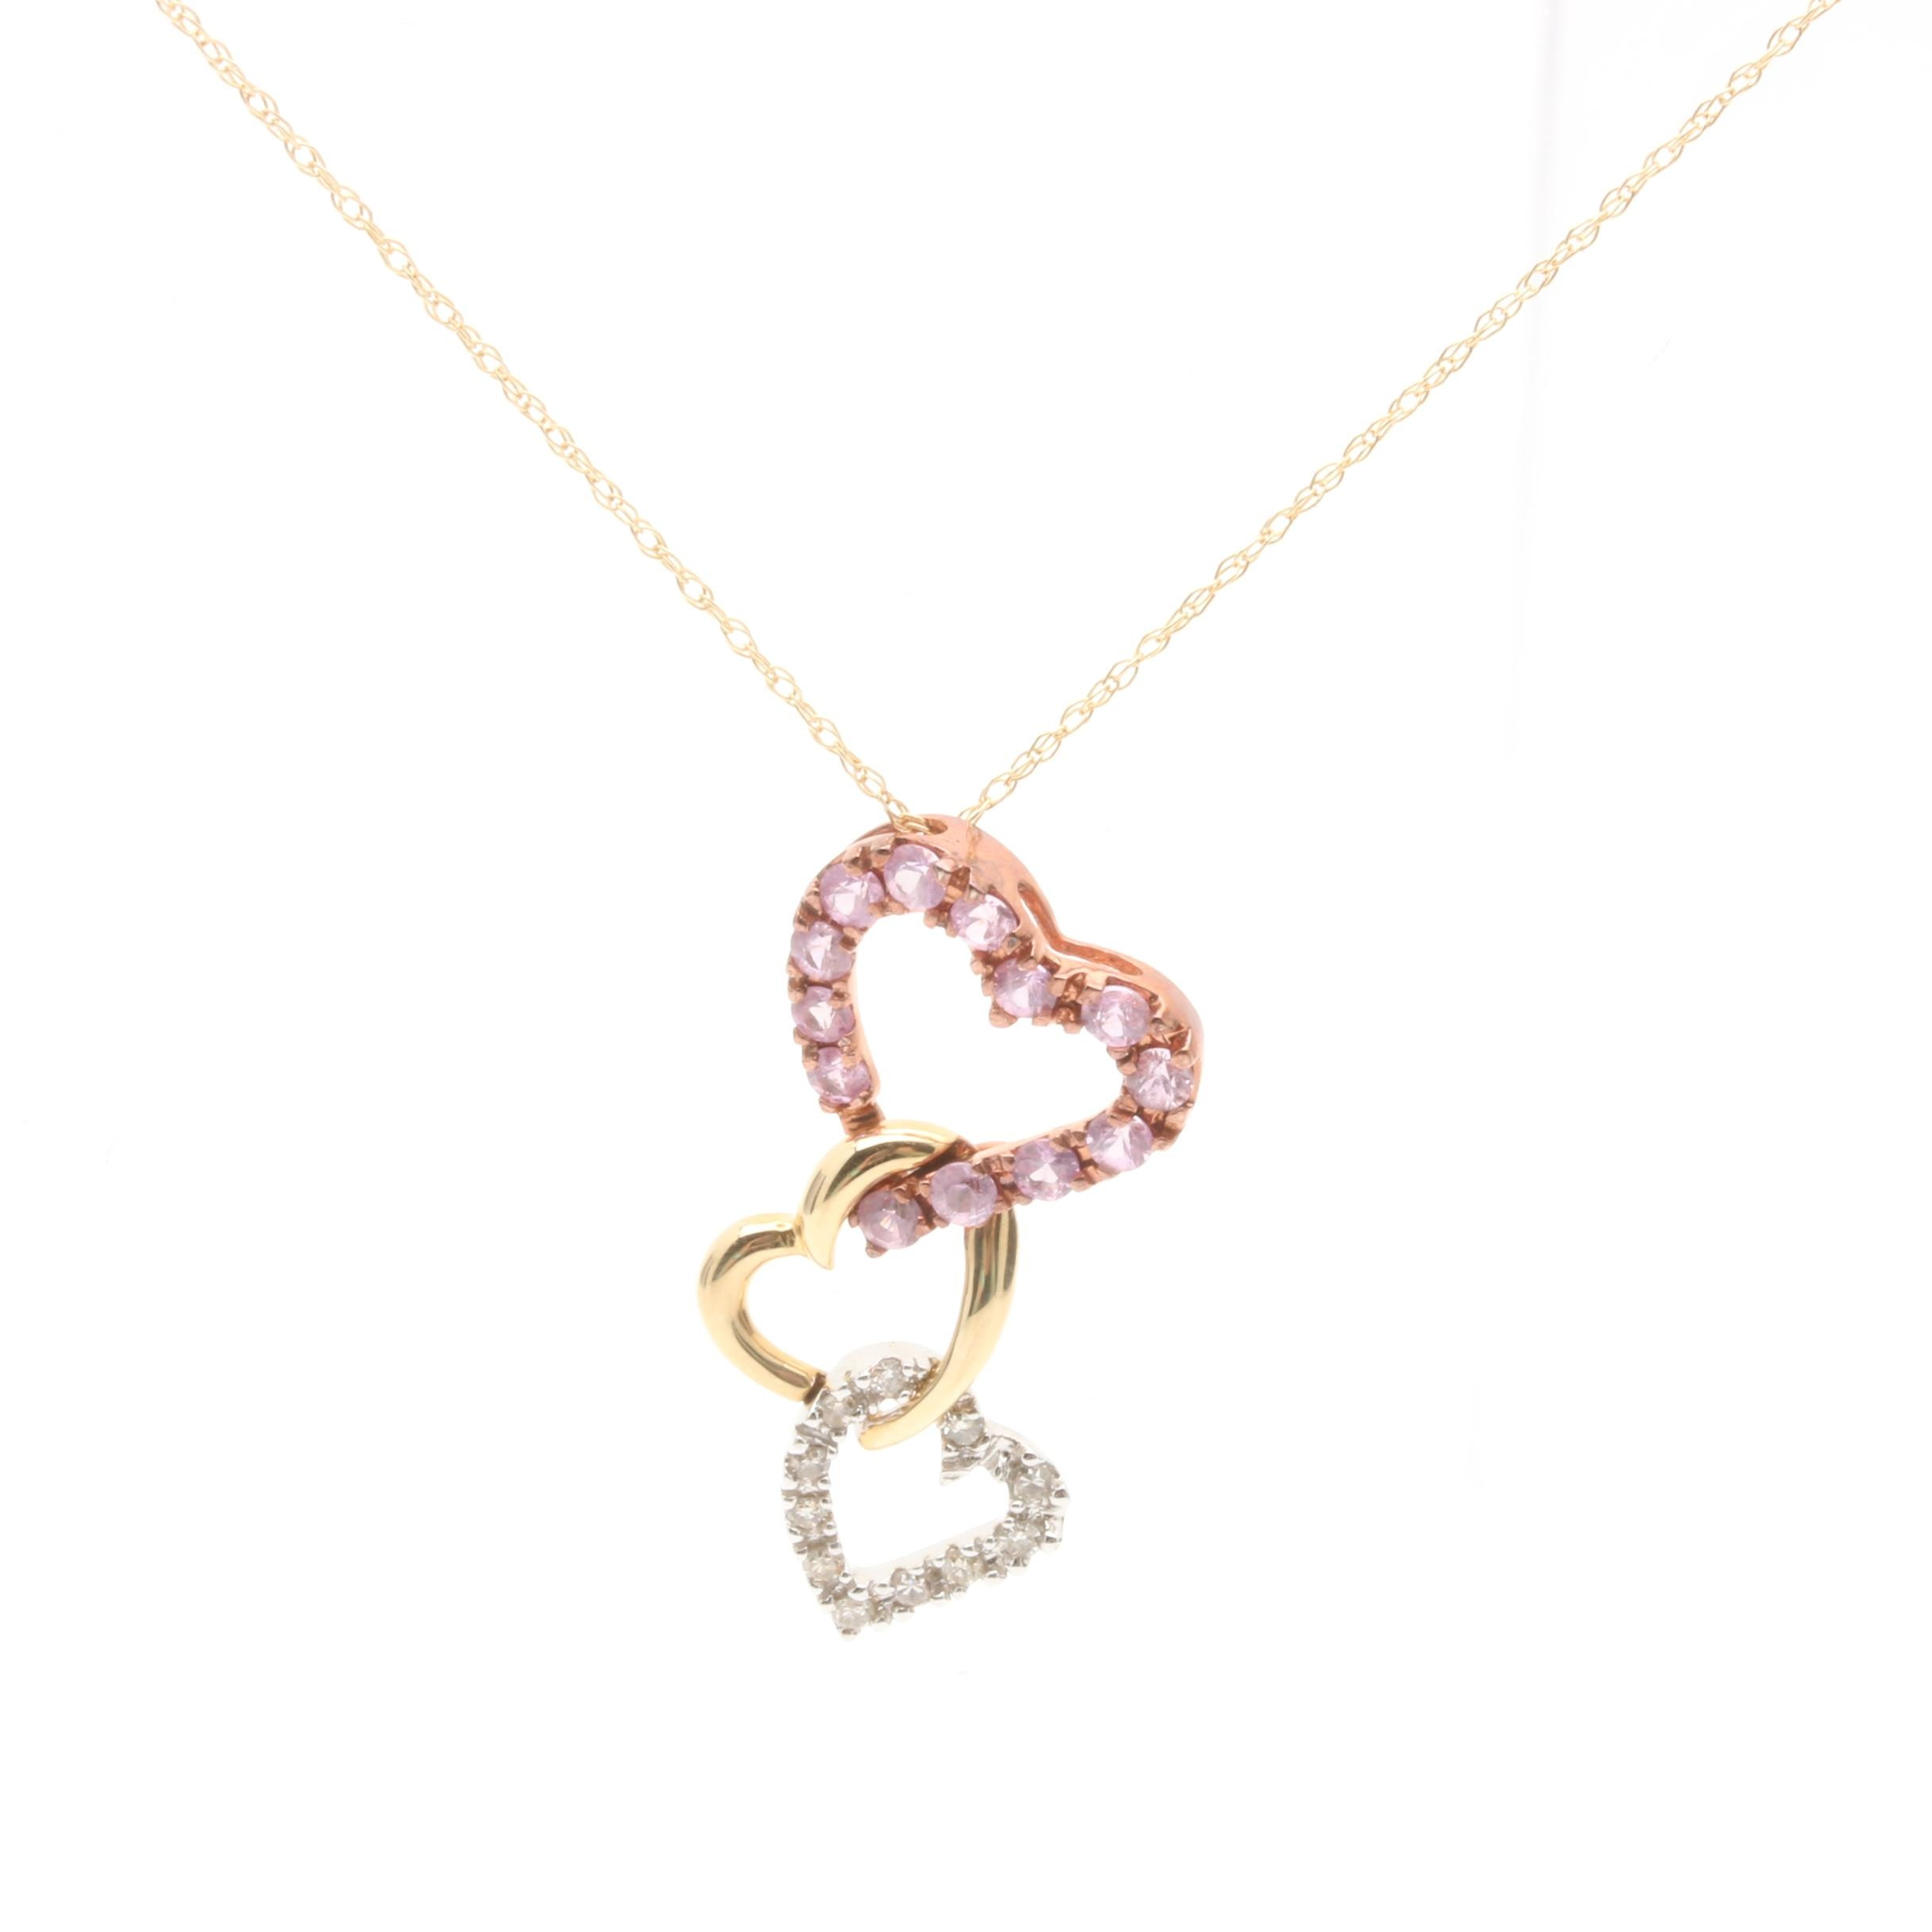 14K Yellow Gold Pink Sapphire and Diamond Heart Pendant Necklace